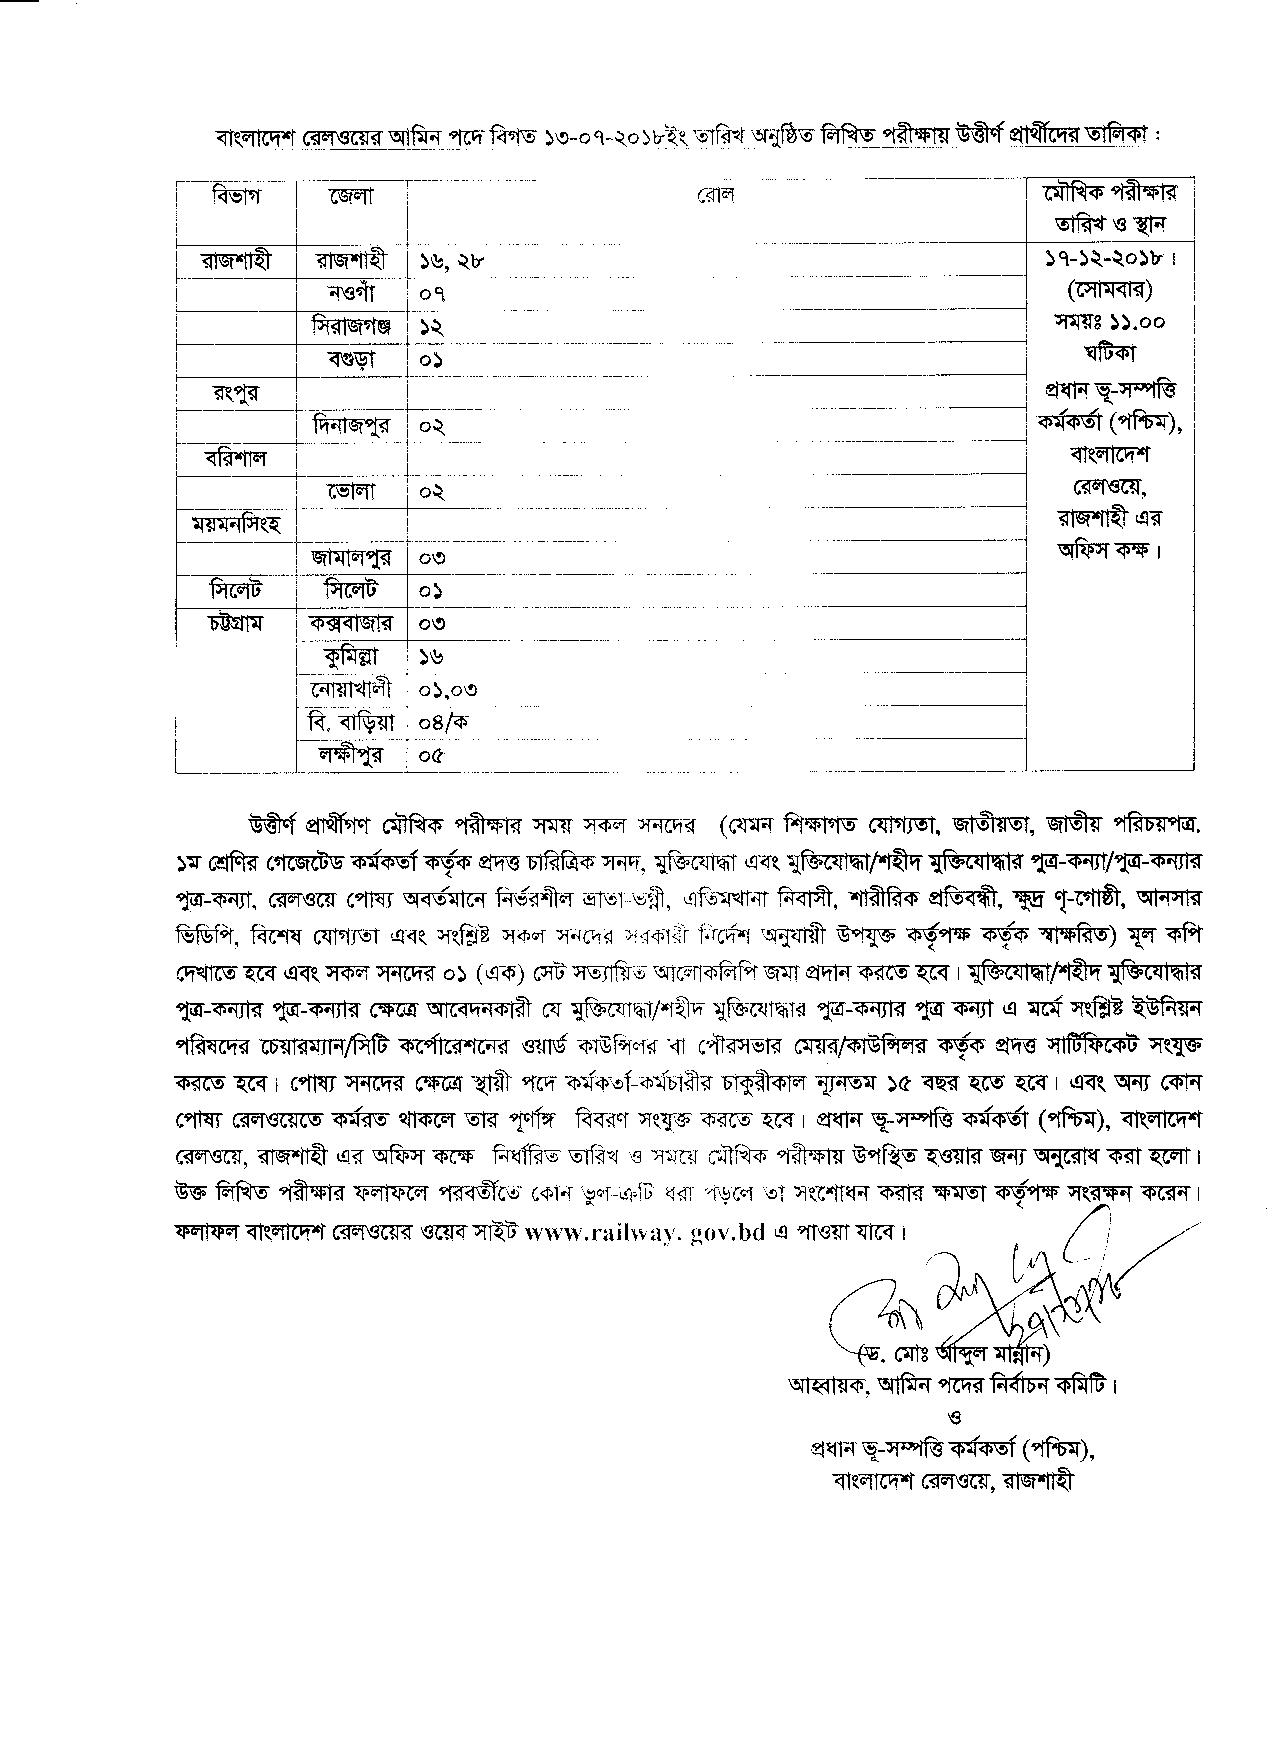 Bangladesh Railway Exam Result Viva Date 2018